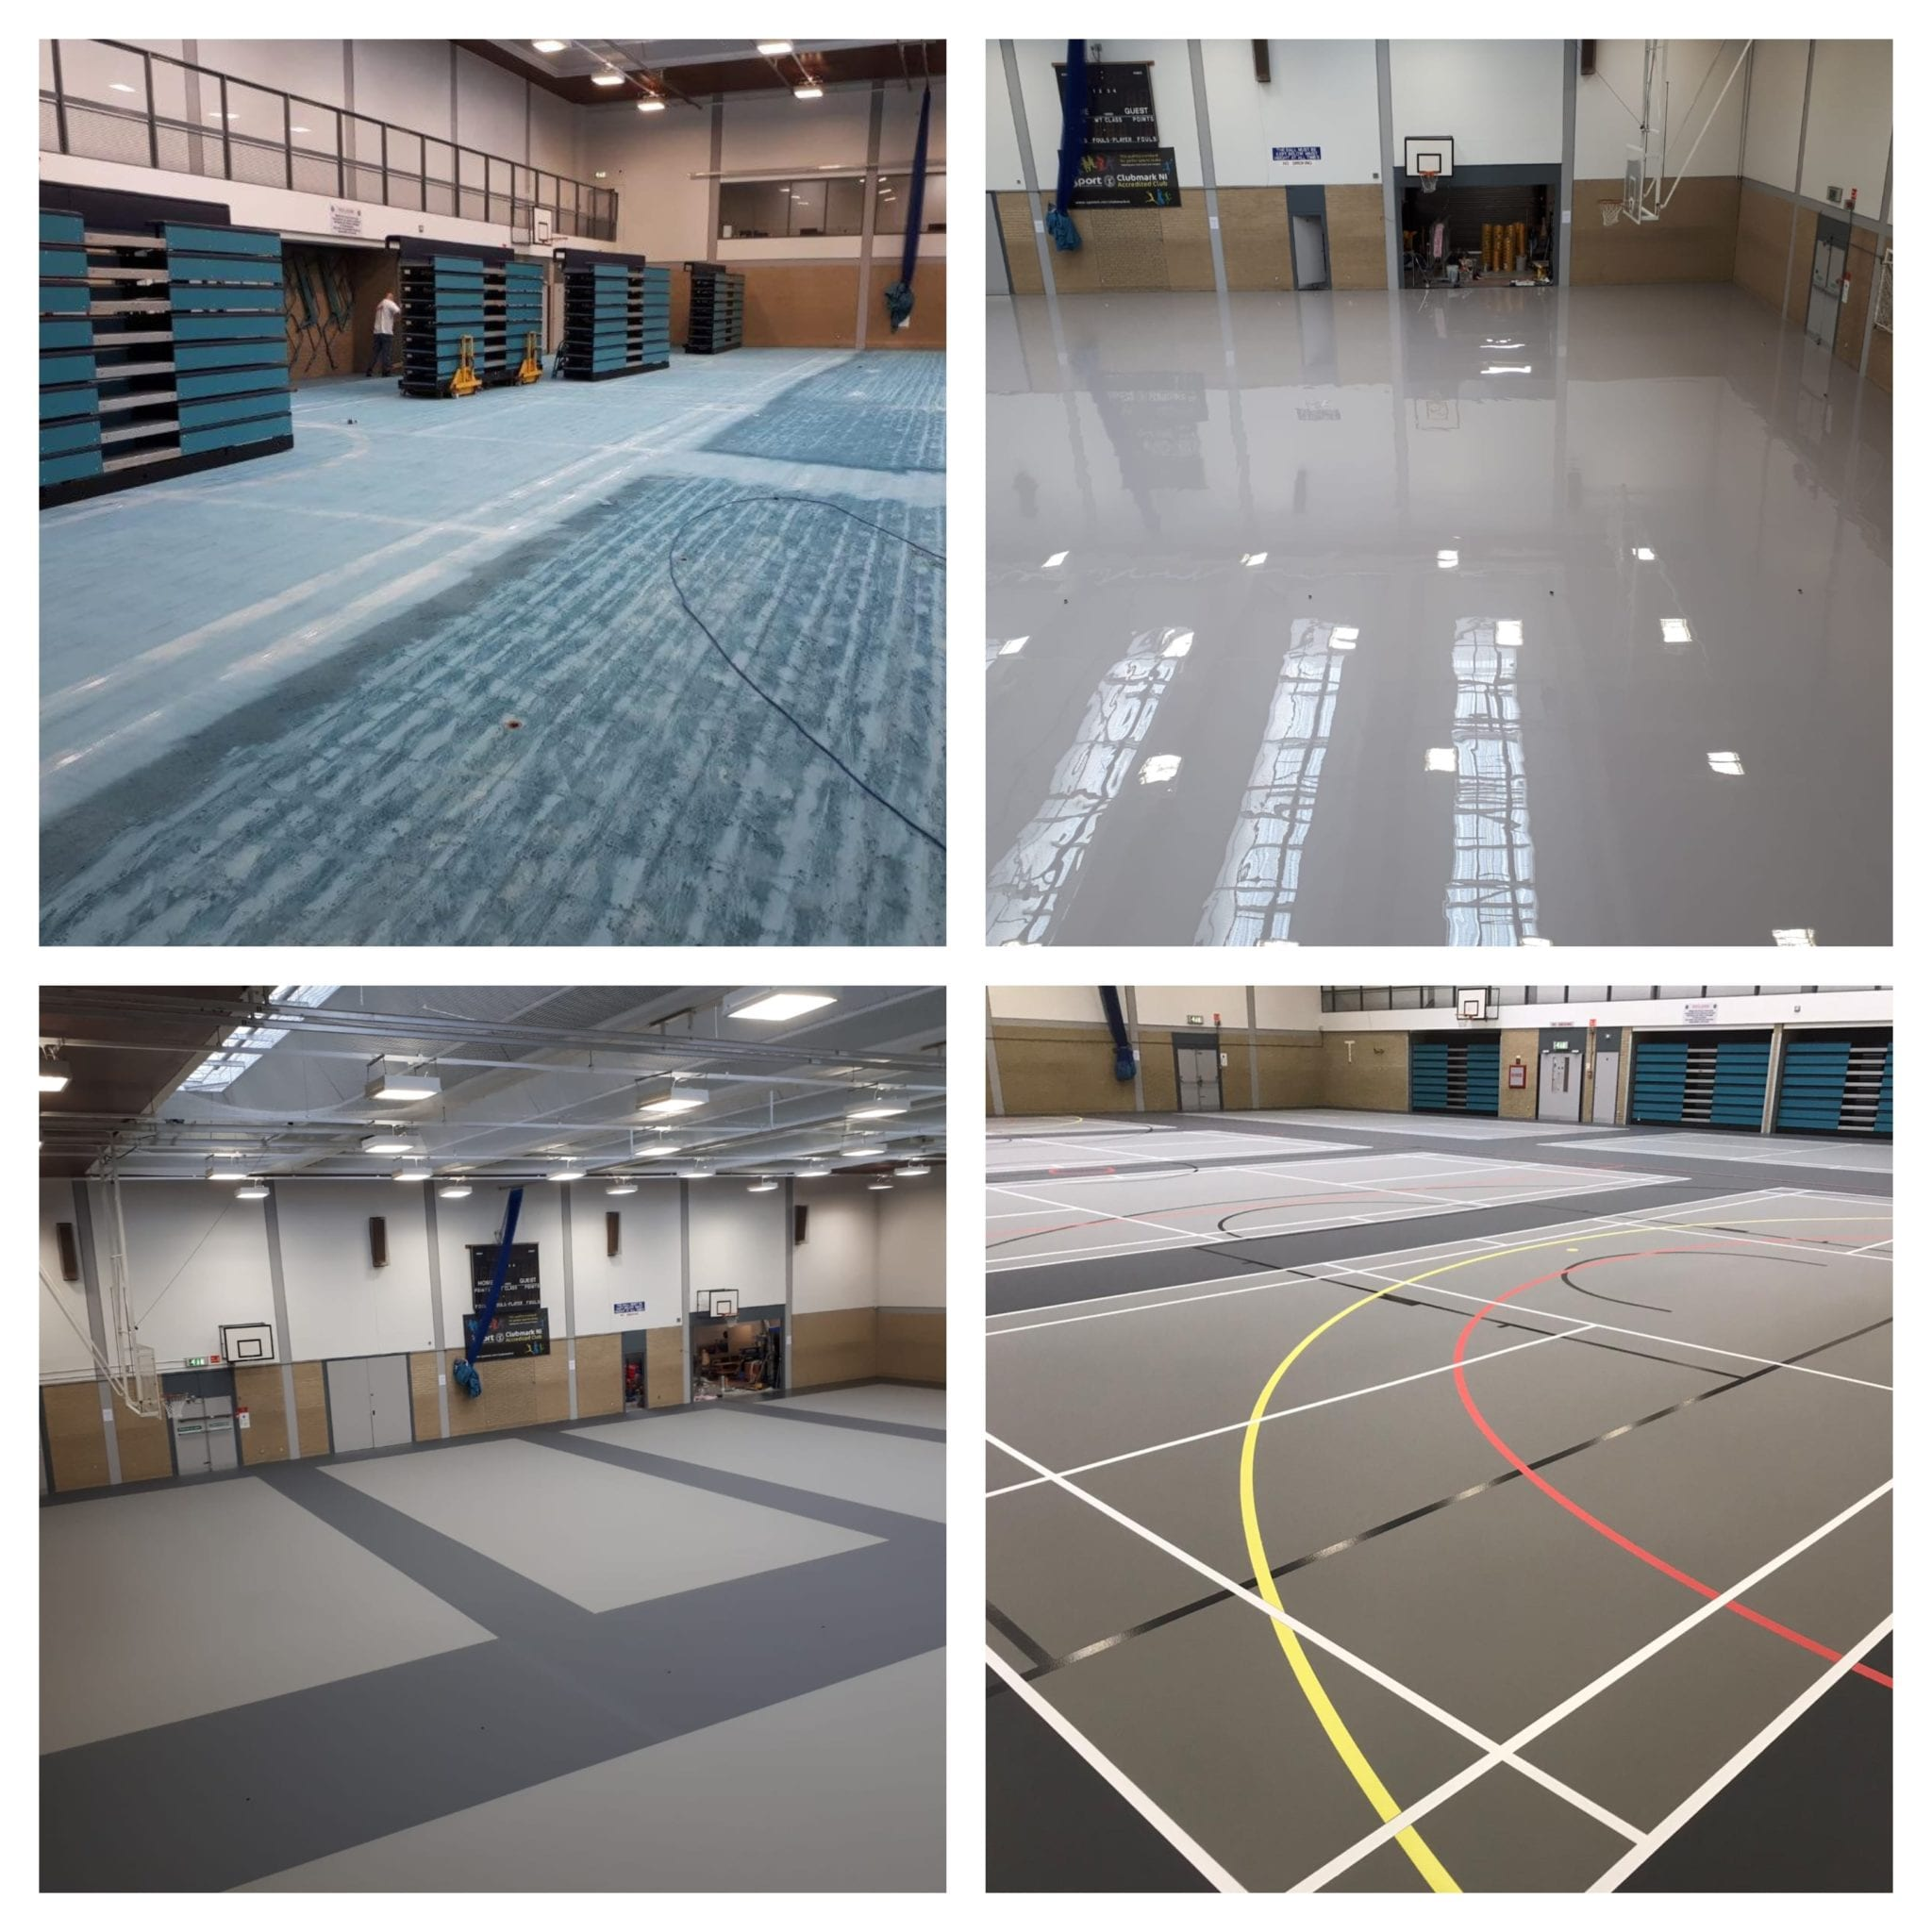 Pulastic Facelift on Multi-Use Leisure Centre Sports floor